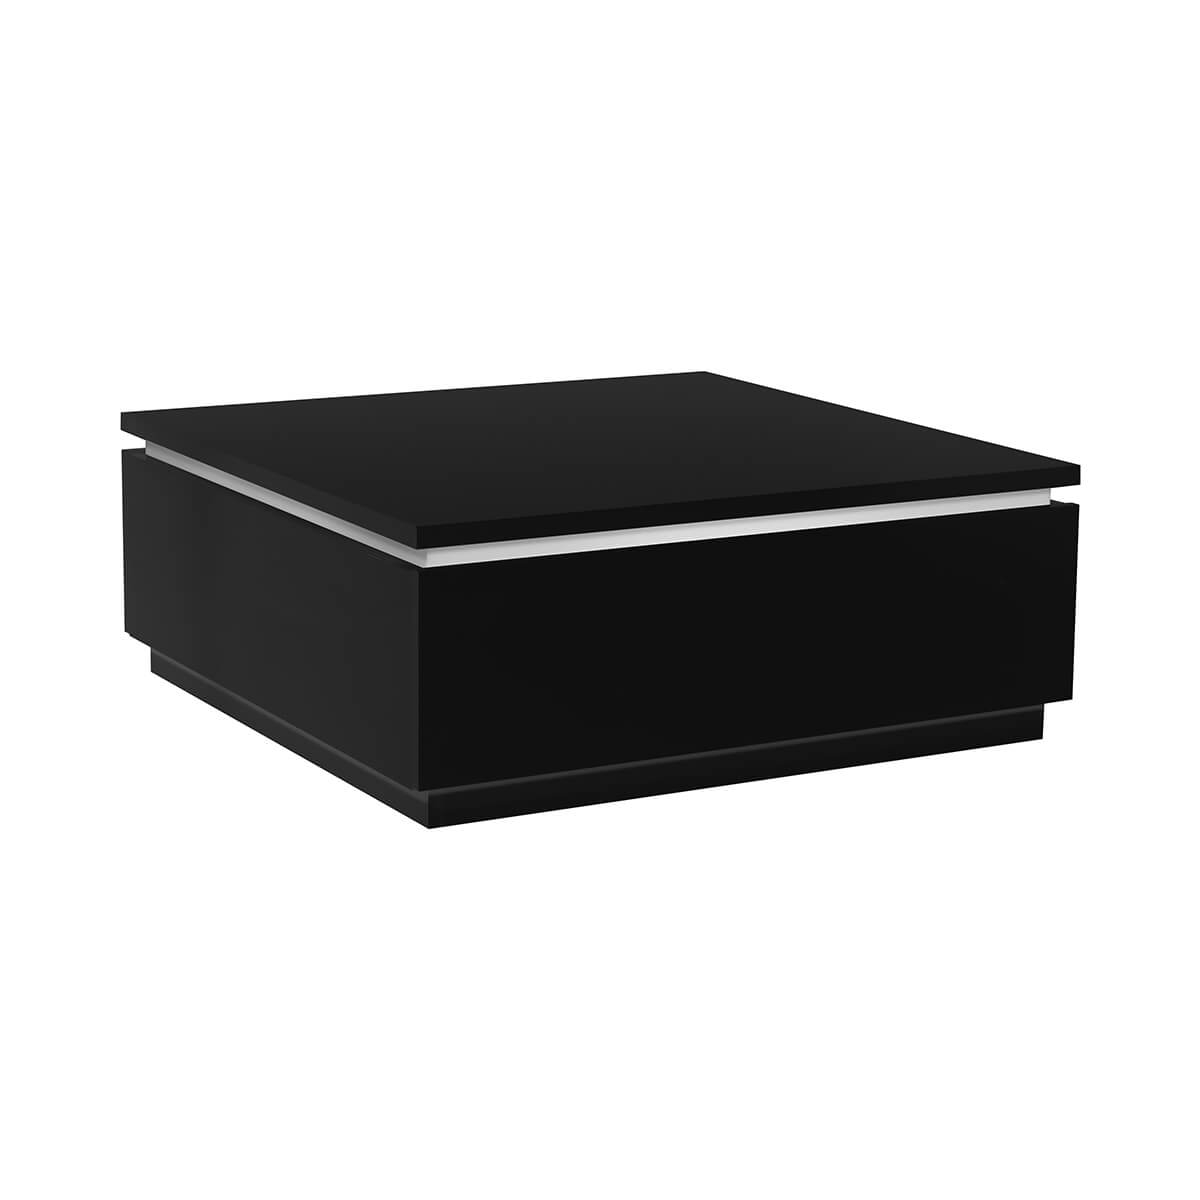 Logan High Gloss Black Coffee Table With Storage Lights Fads within measurements 1200 X 1200